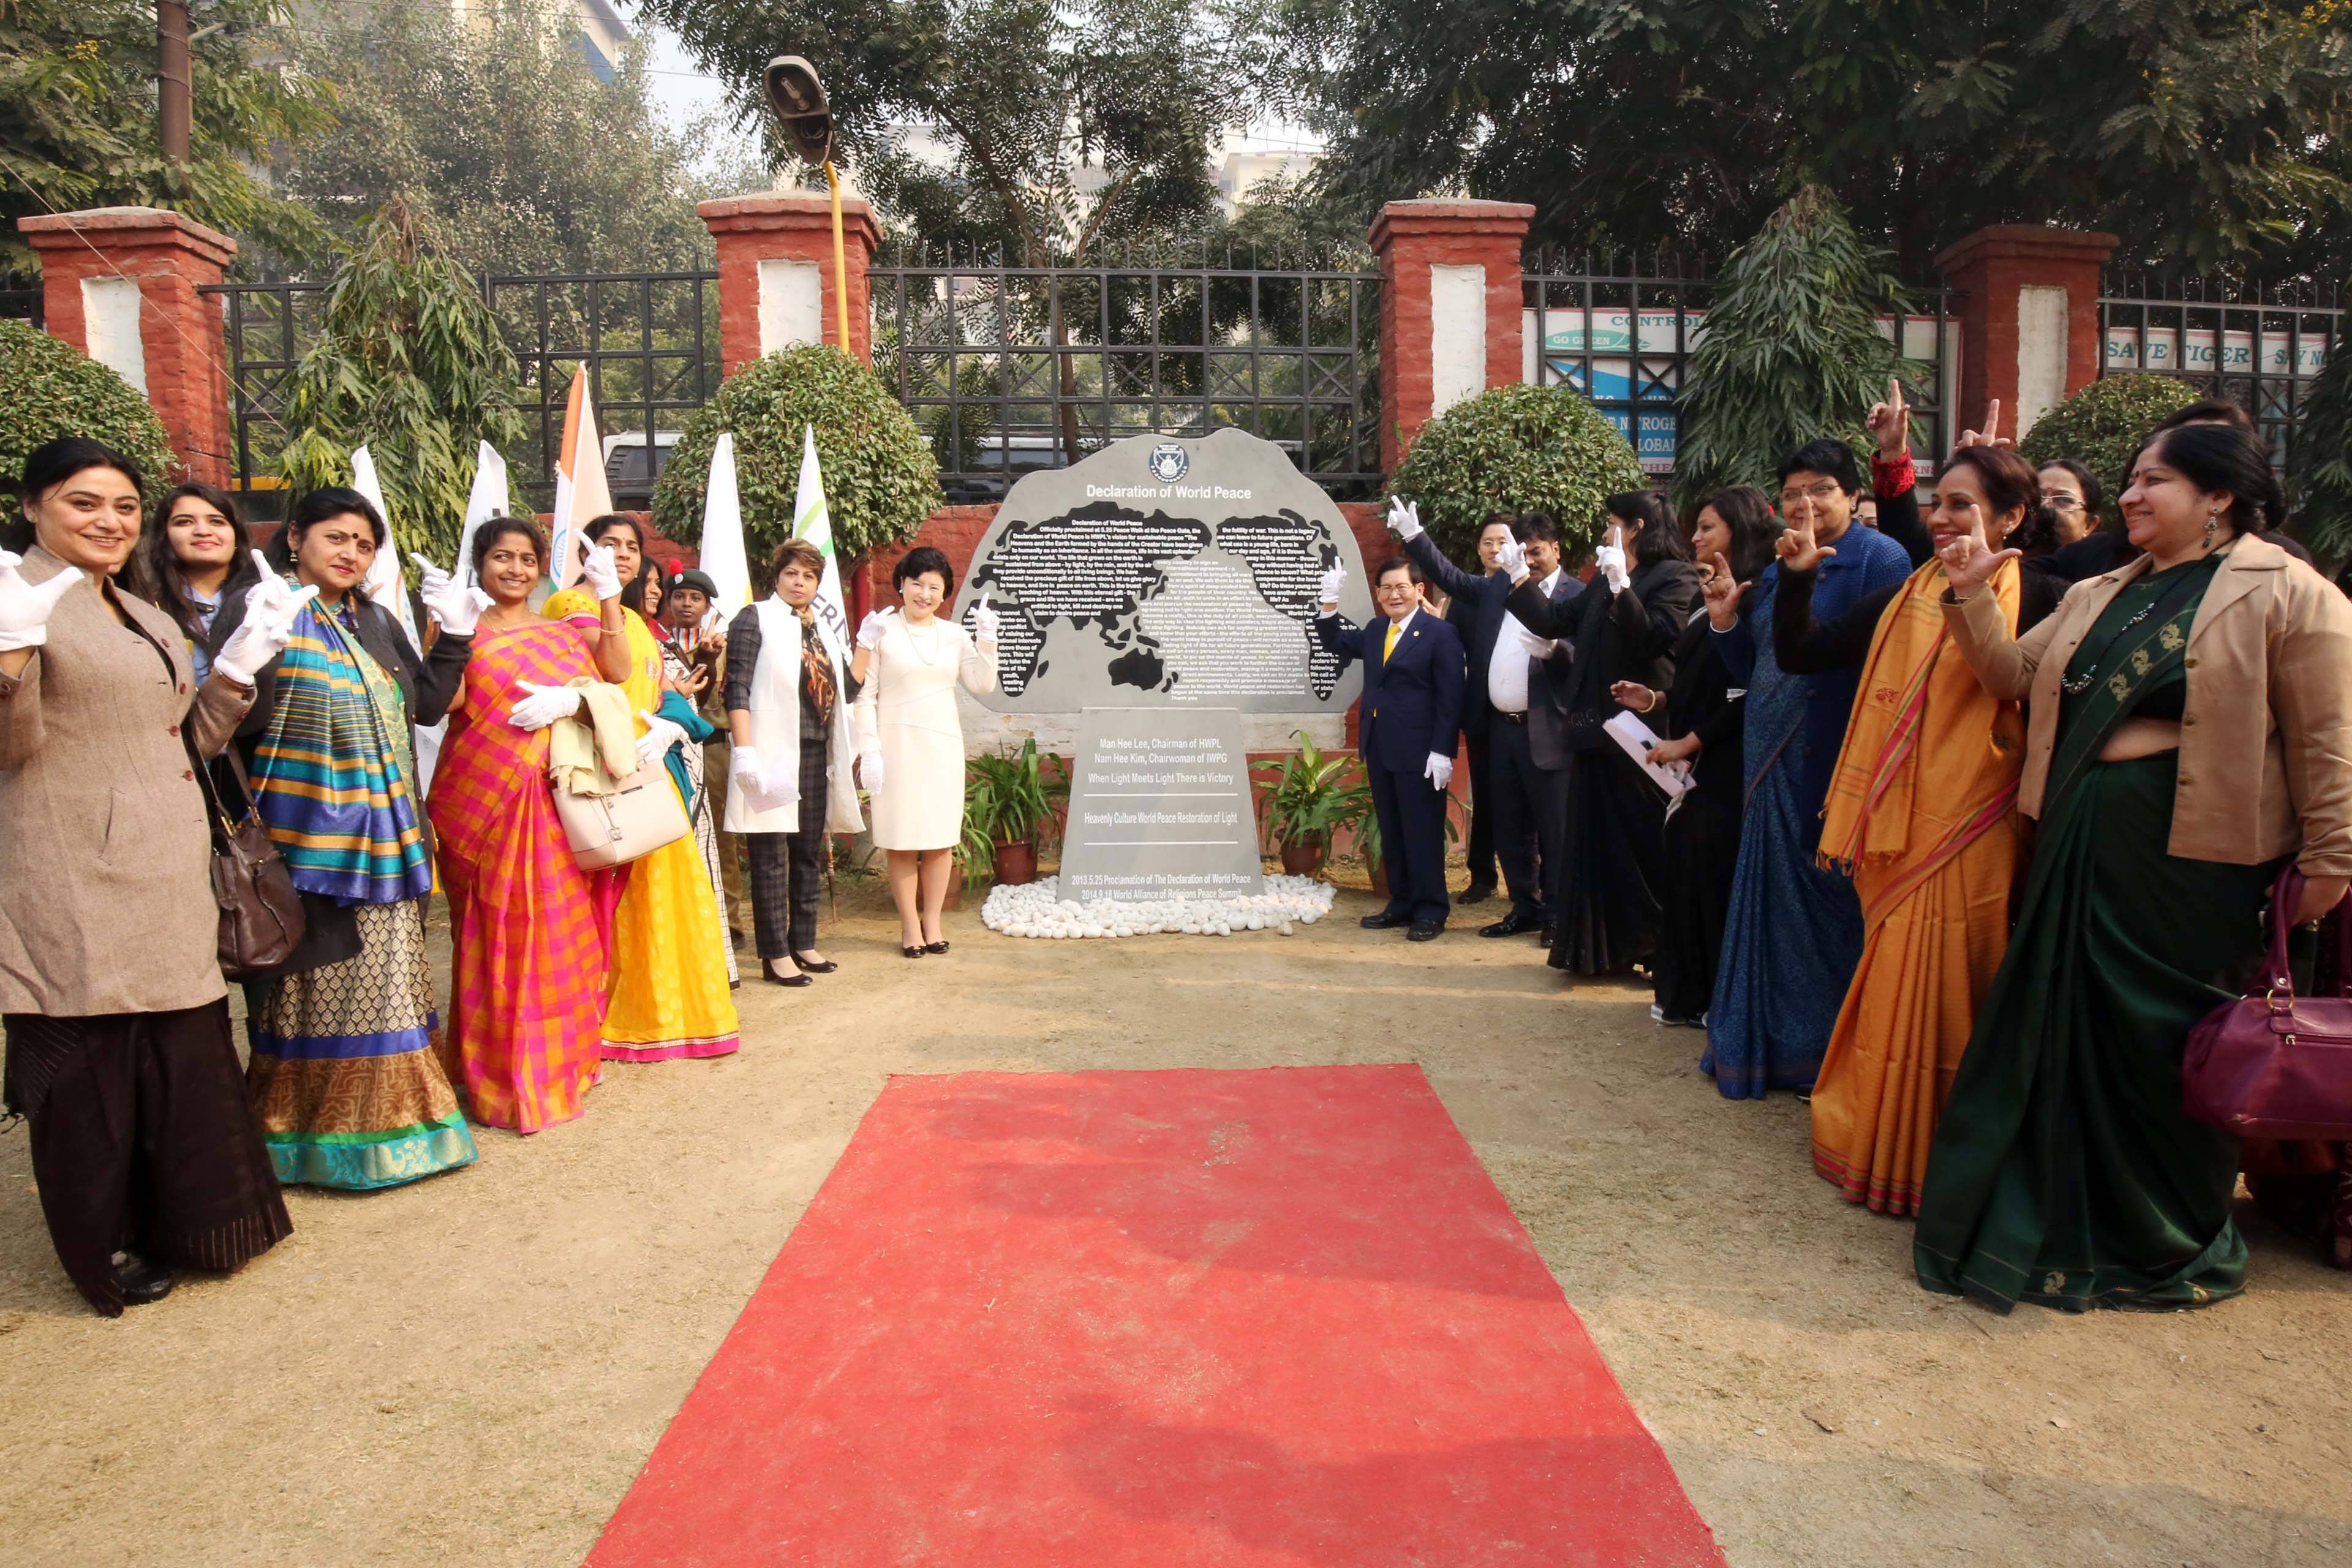 Chairman Lee of HWPL and Chairwoman Kim of IWPGwith Ramagya Schoolrepresentatives at the unveiling ceremony of the Monument